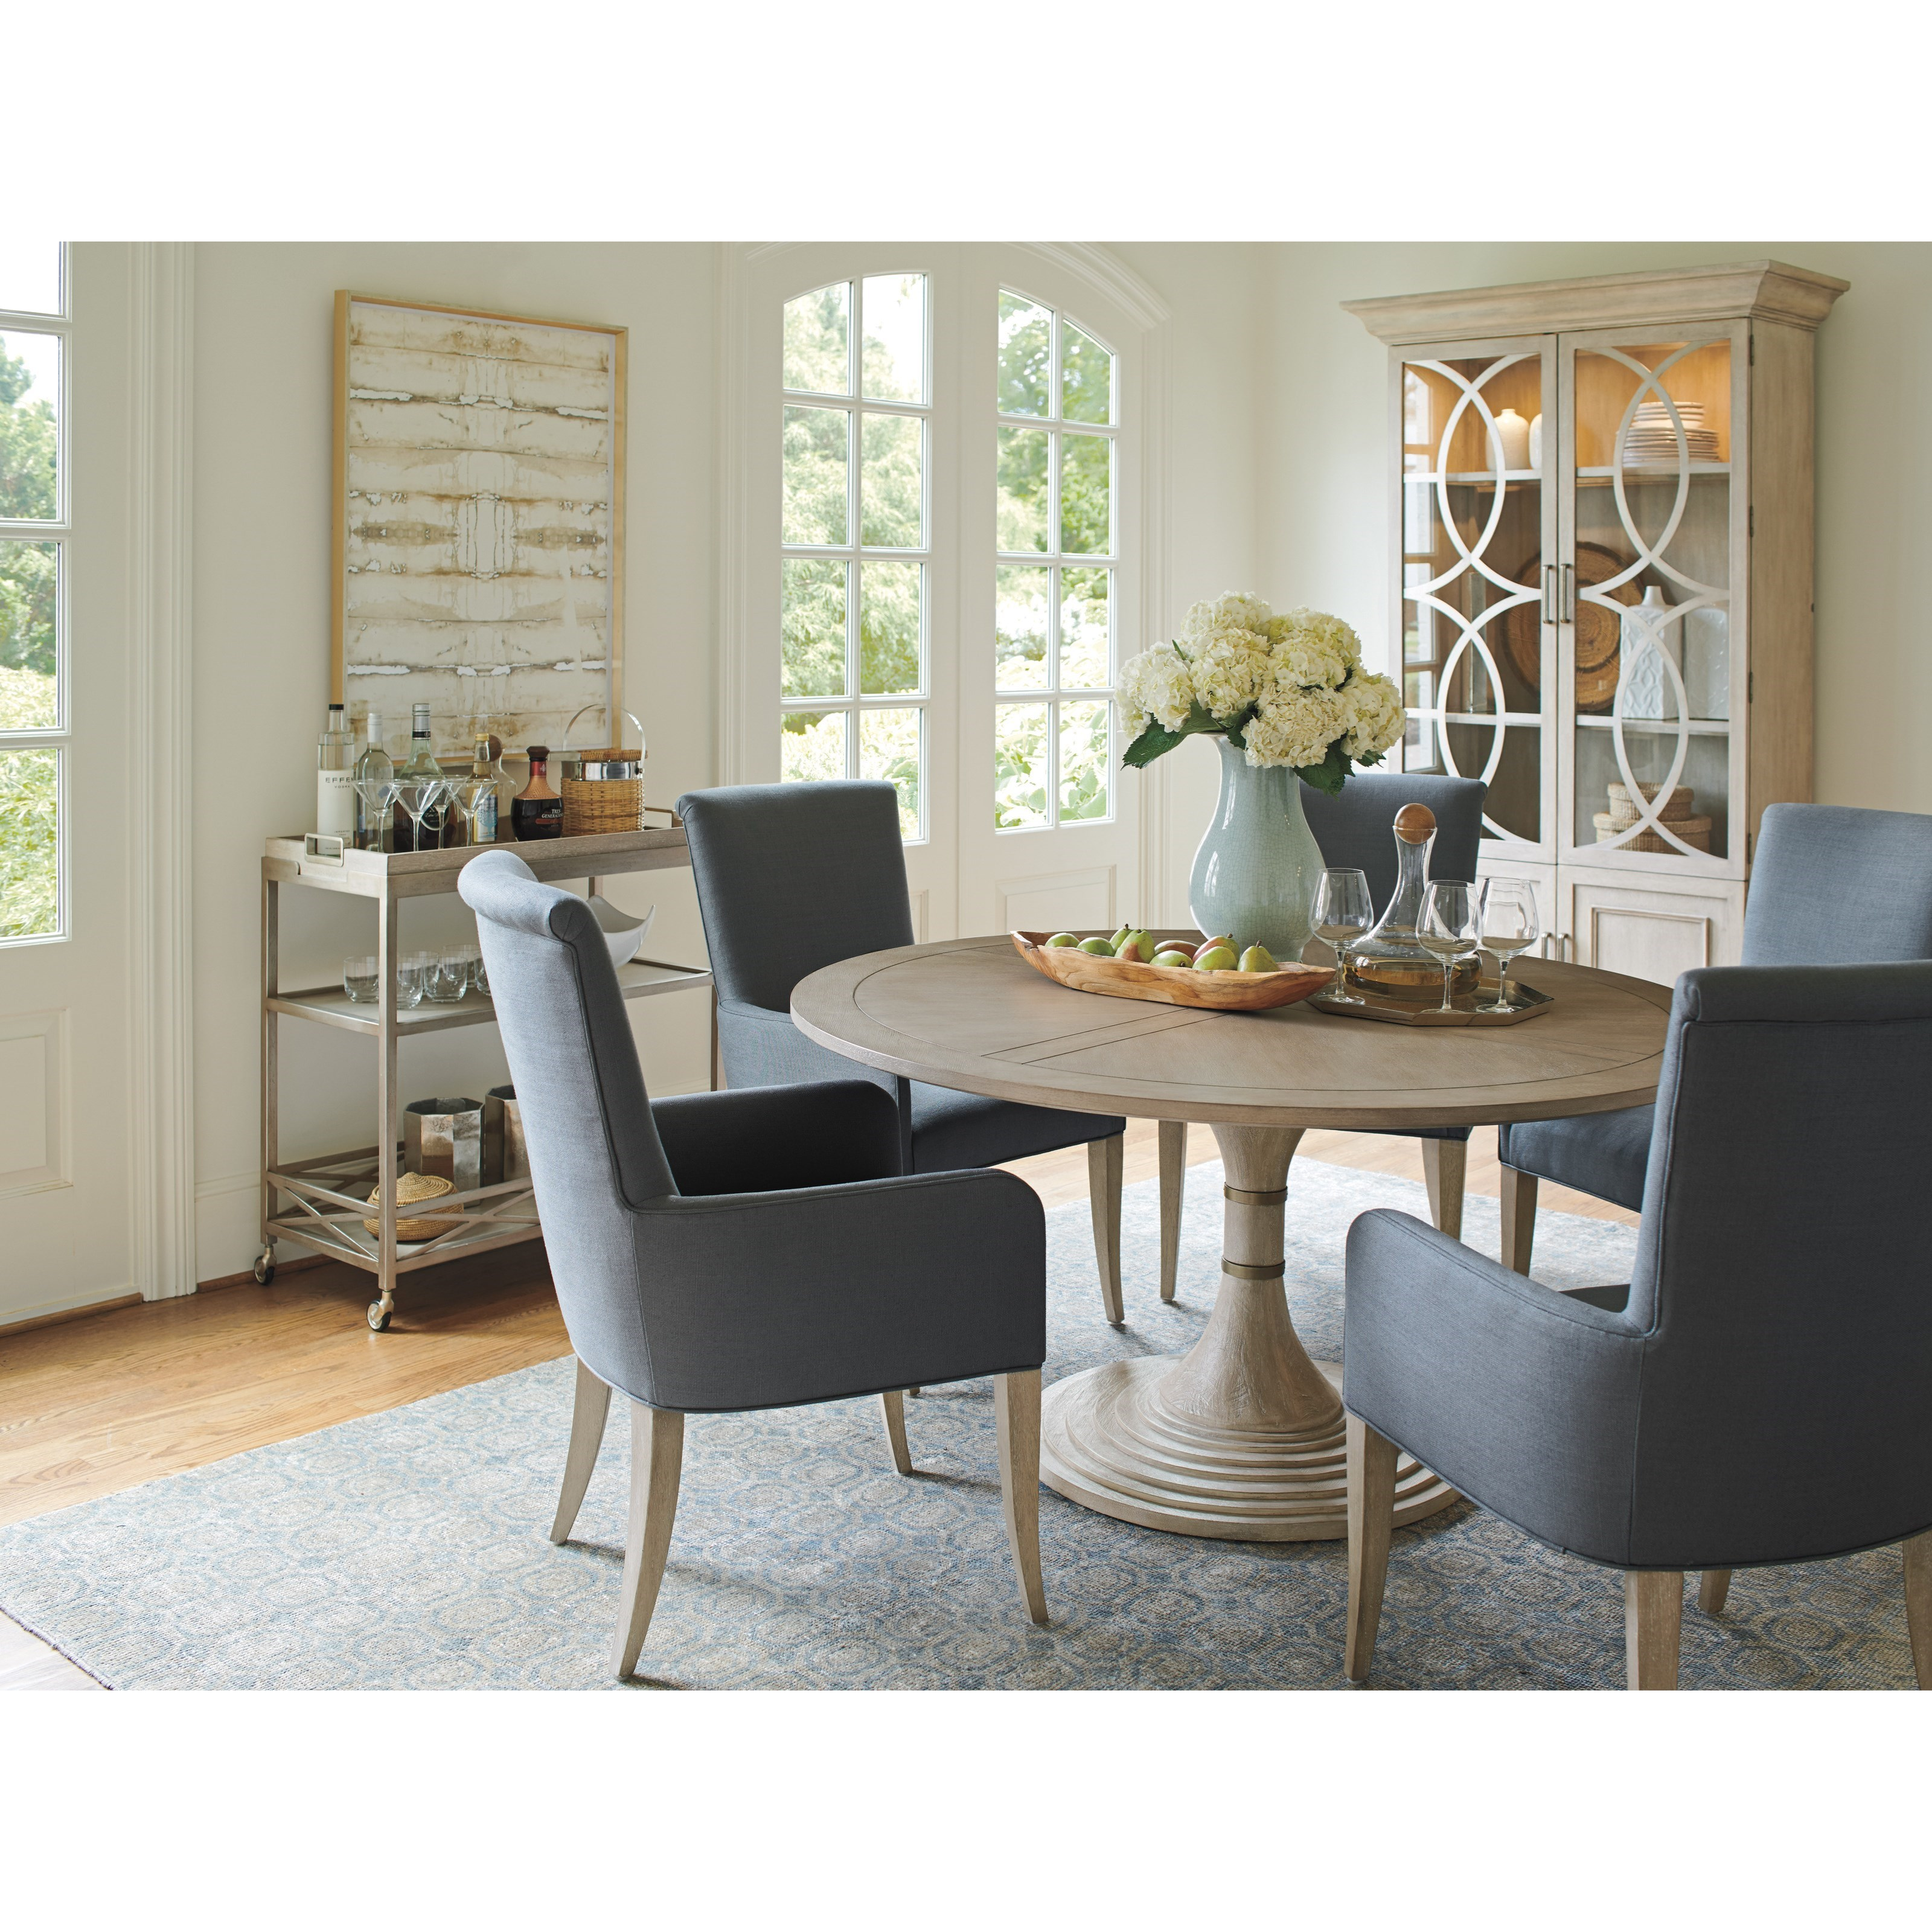 Malibu Casual Dining Room Group by Barclay Butera at Baer's Furniture